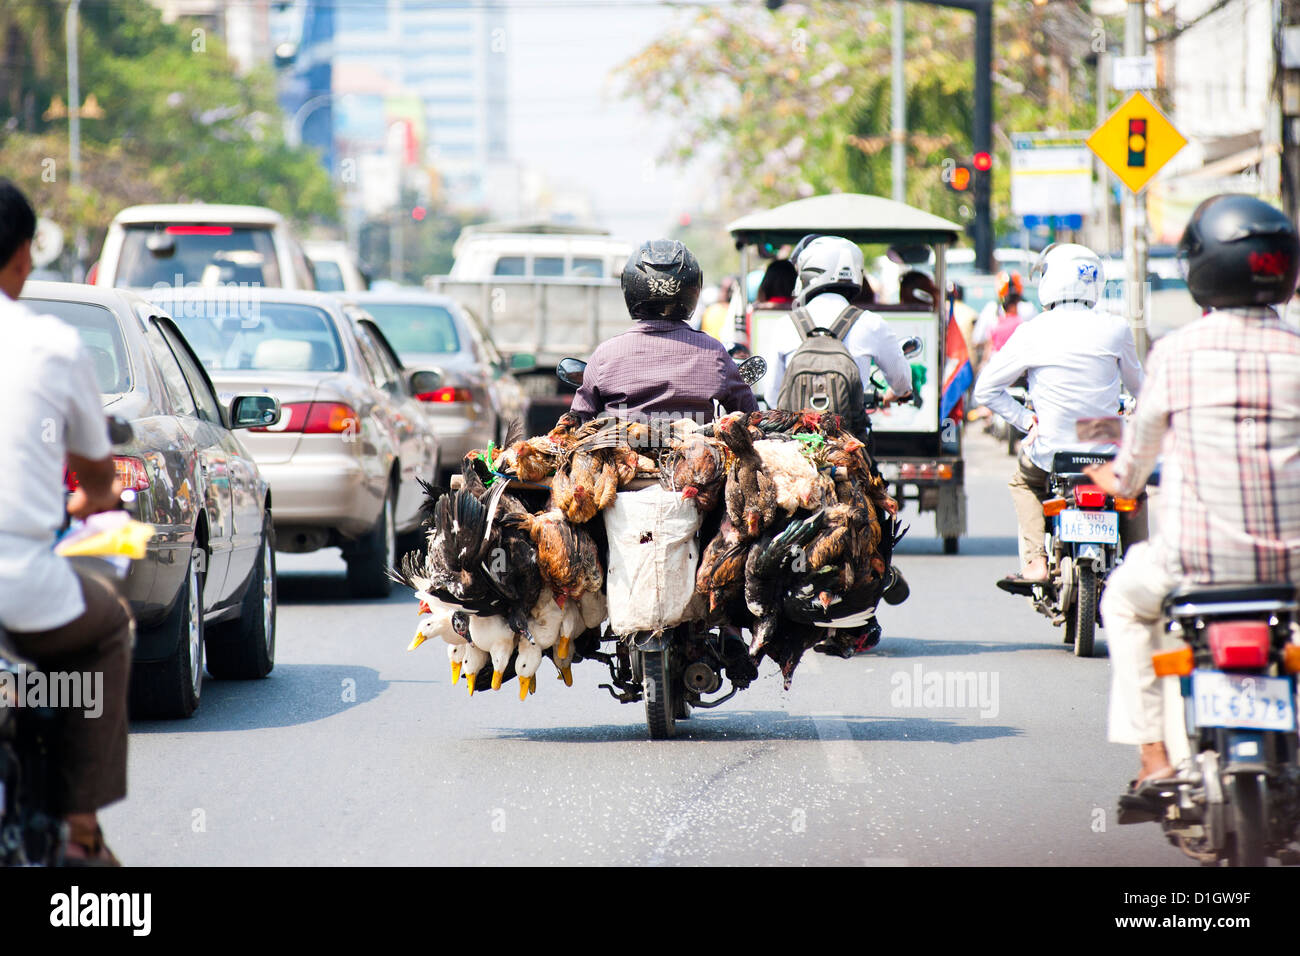 Live chickens and ducks being taken to market on a moped in Phnom Penh, Cambodia, Indochina, Southeast Asia, Asia - Stock Image